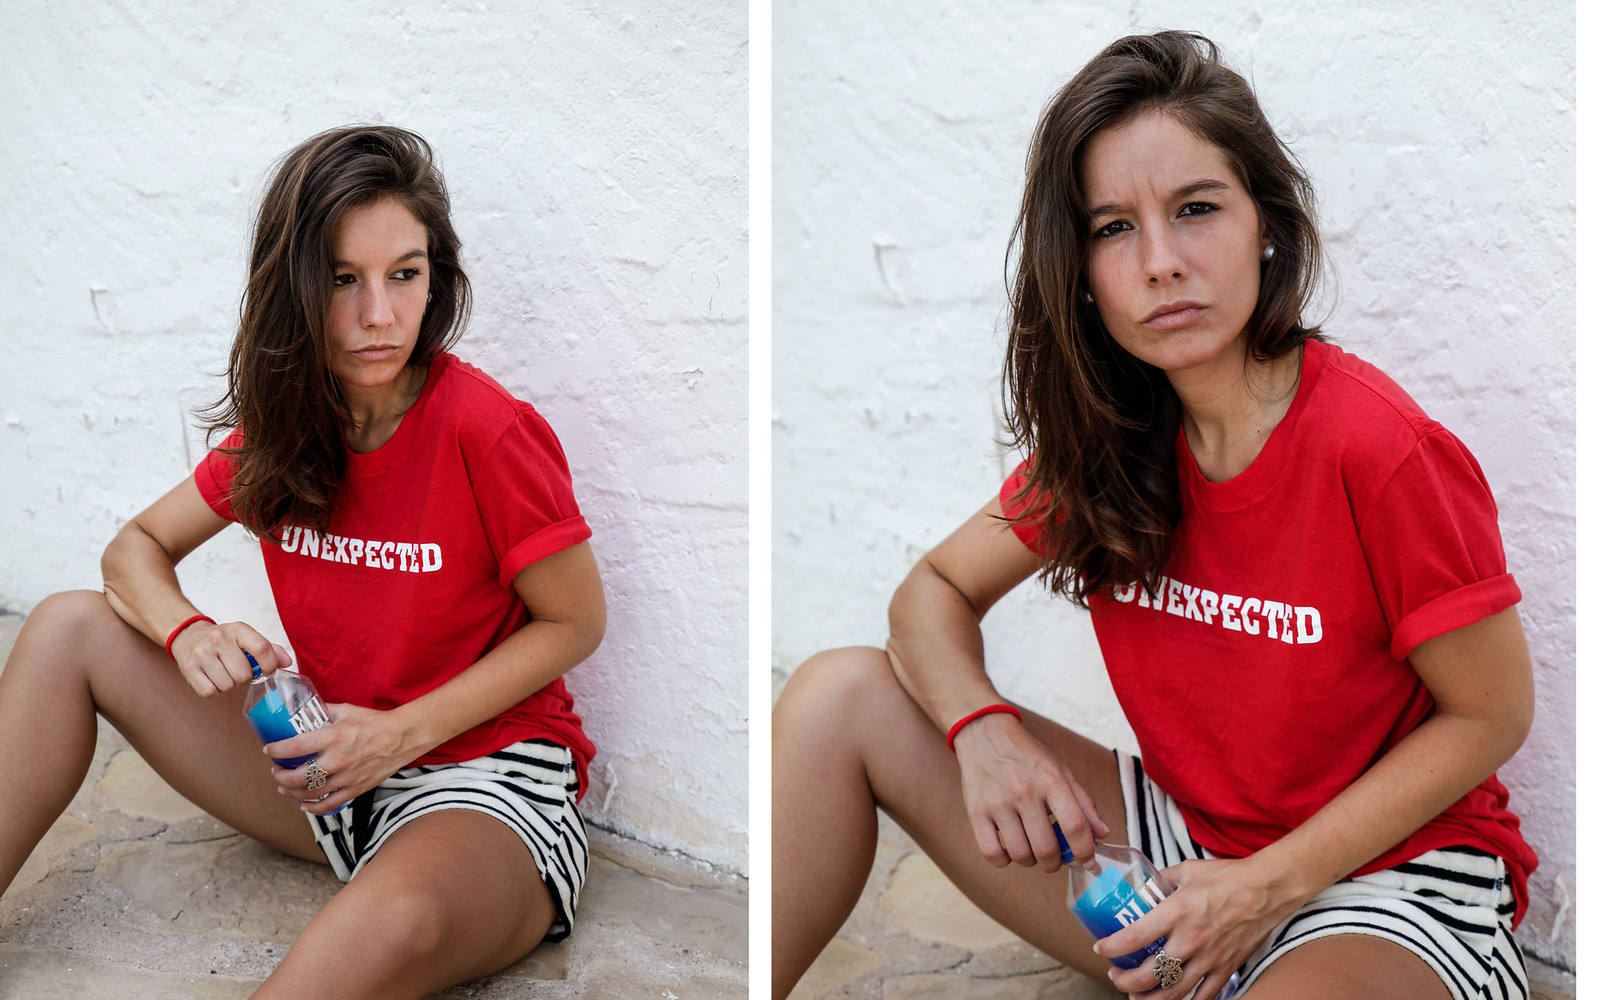 05_shorts_rayas_unexpected_shirt_stripes_shorts_pieces_unexpected_shirt_morinko_red_tshirt_style_theguestgirl_pieces_ootd_influencer_barcelona_verano_fiji_water.